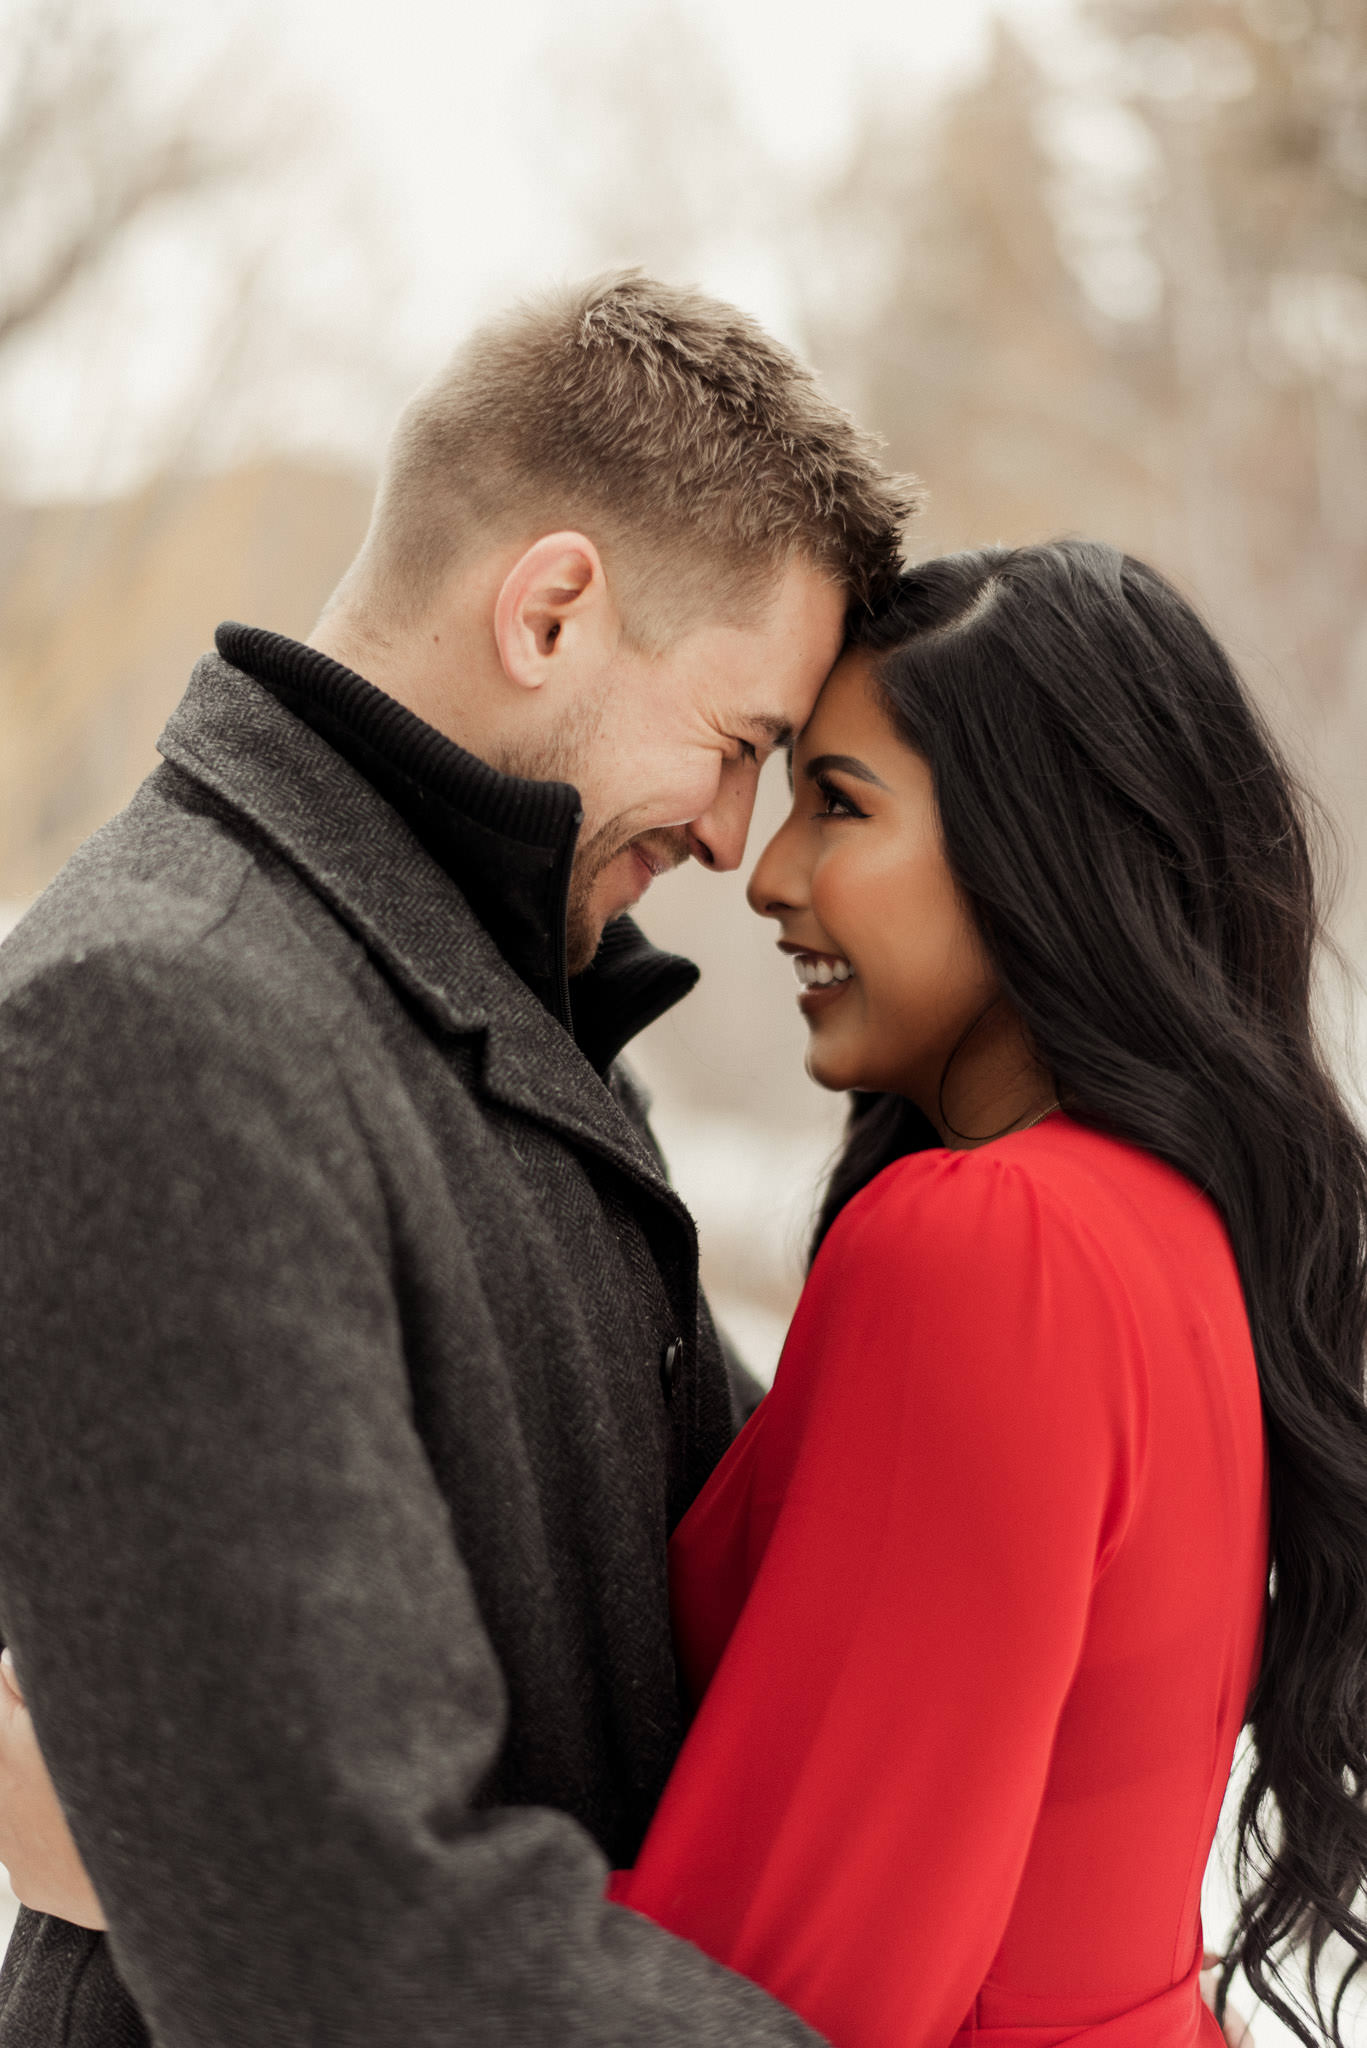 sandra-ryan-colorado-winter-snow-engagement-couples-valentines-red-houston-photographer-sm-6.jpg